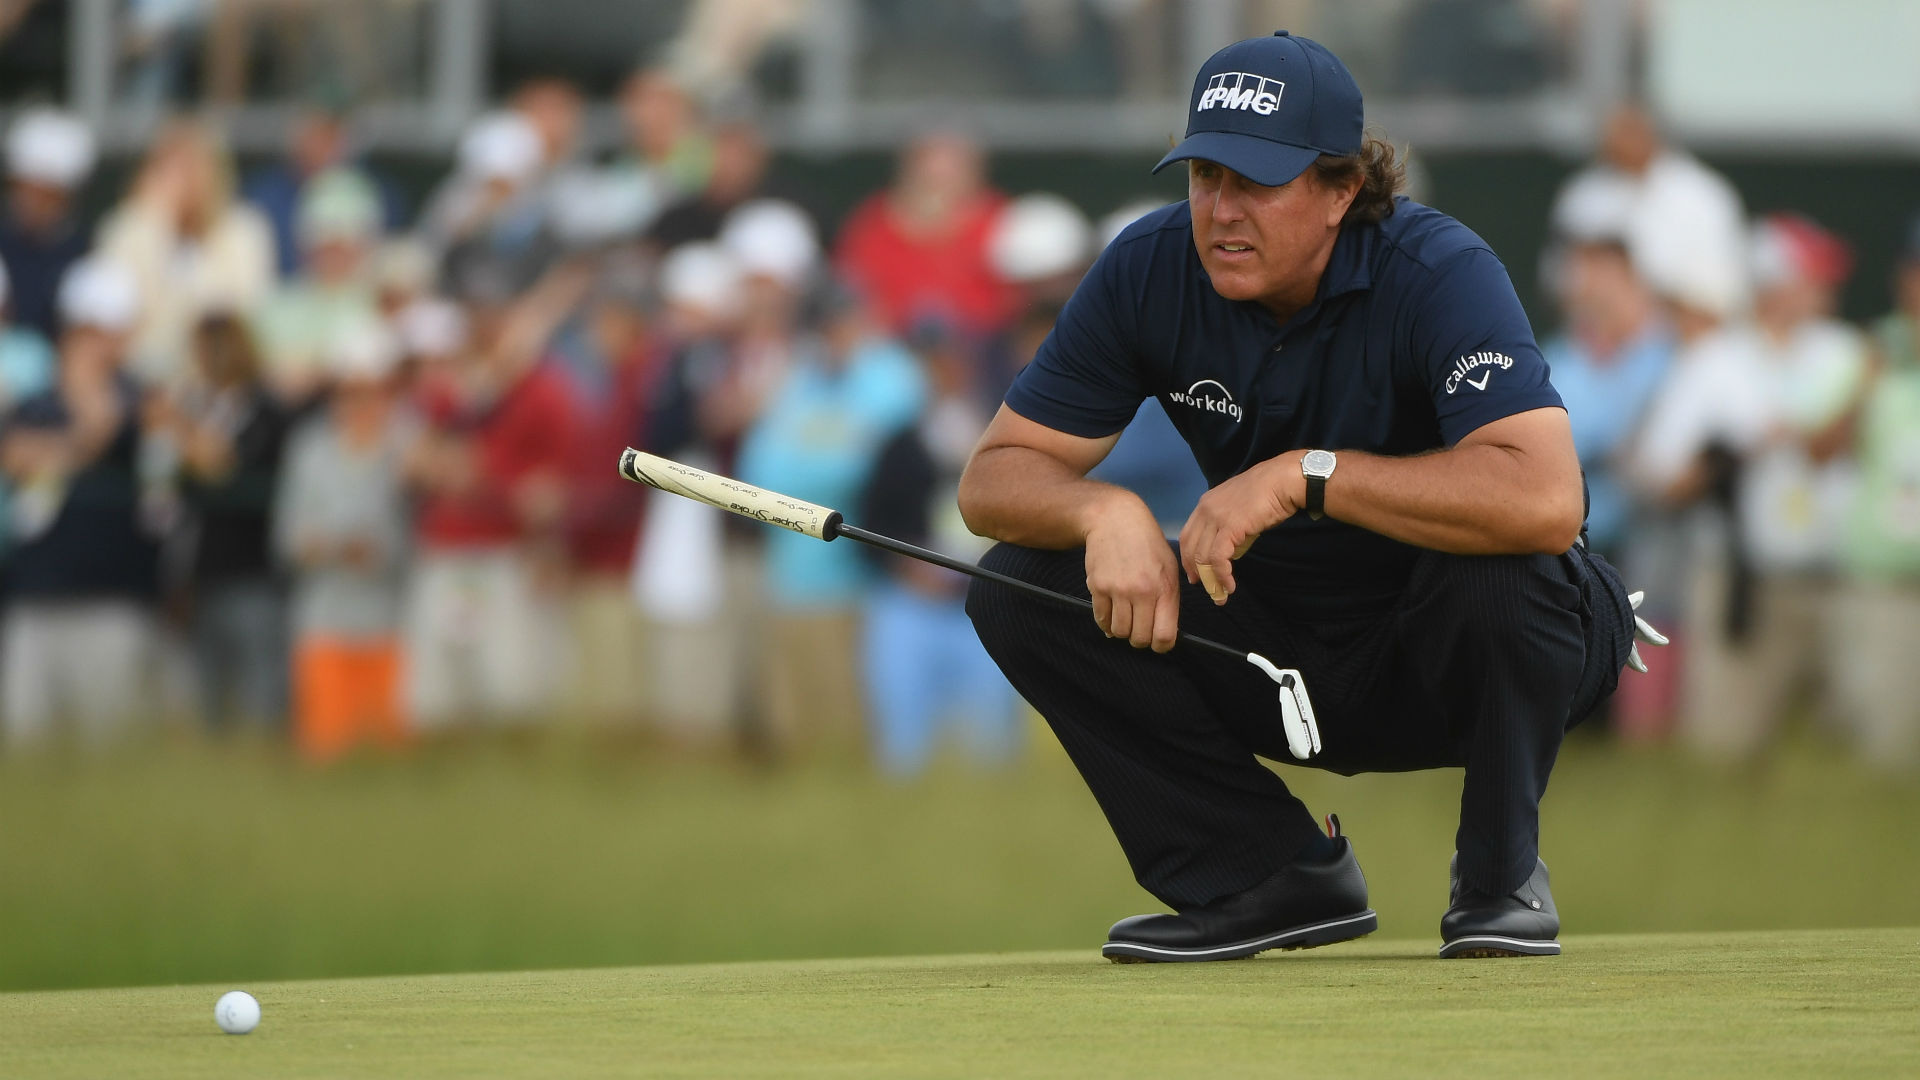 Phil Mickelson apologizes 4 days after violating golf rules at US Open